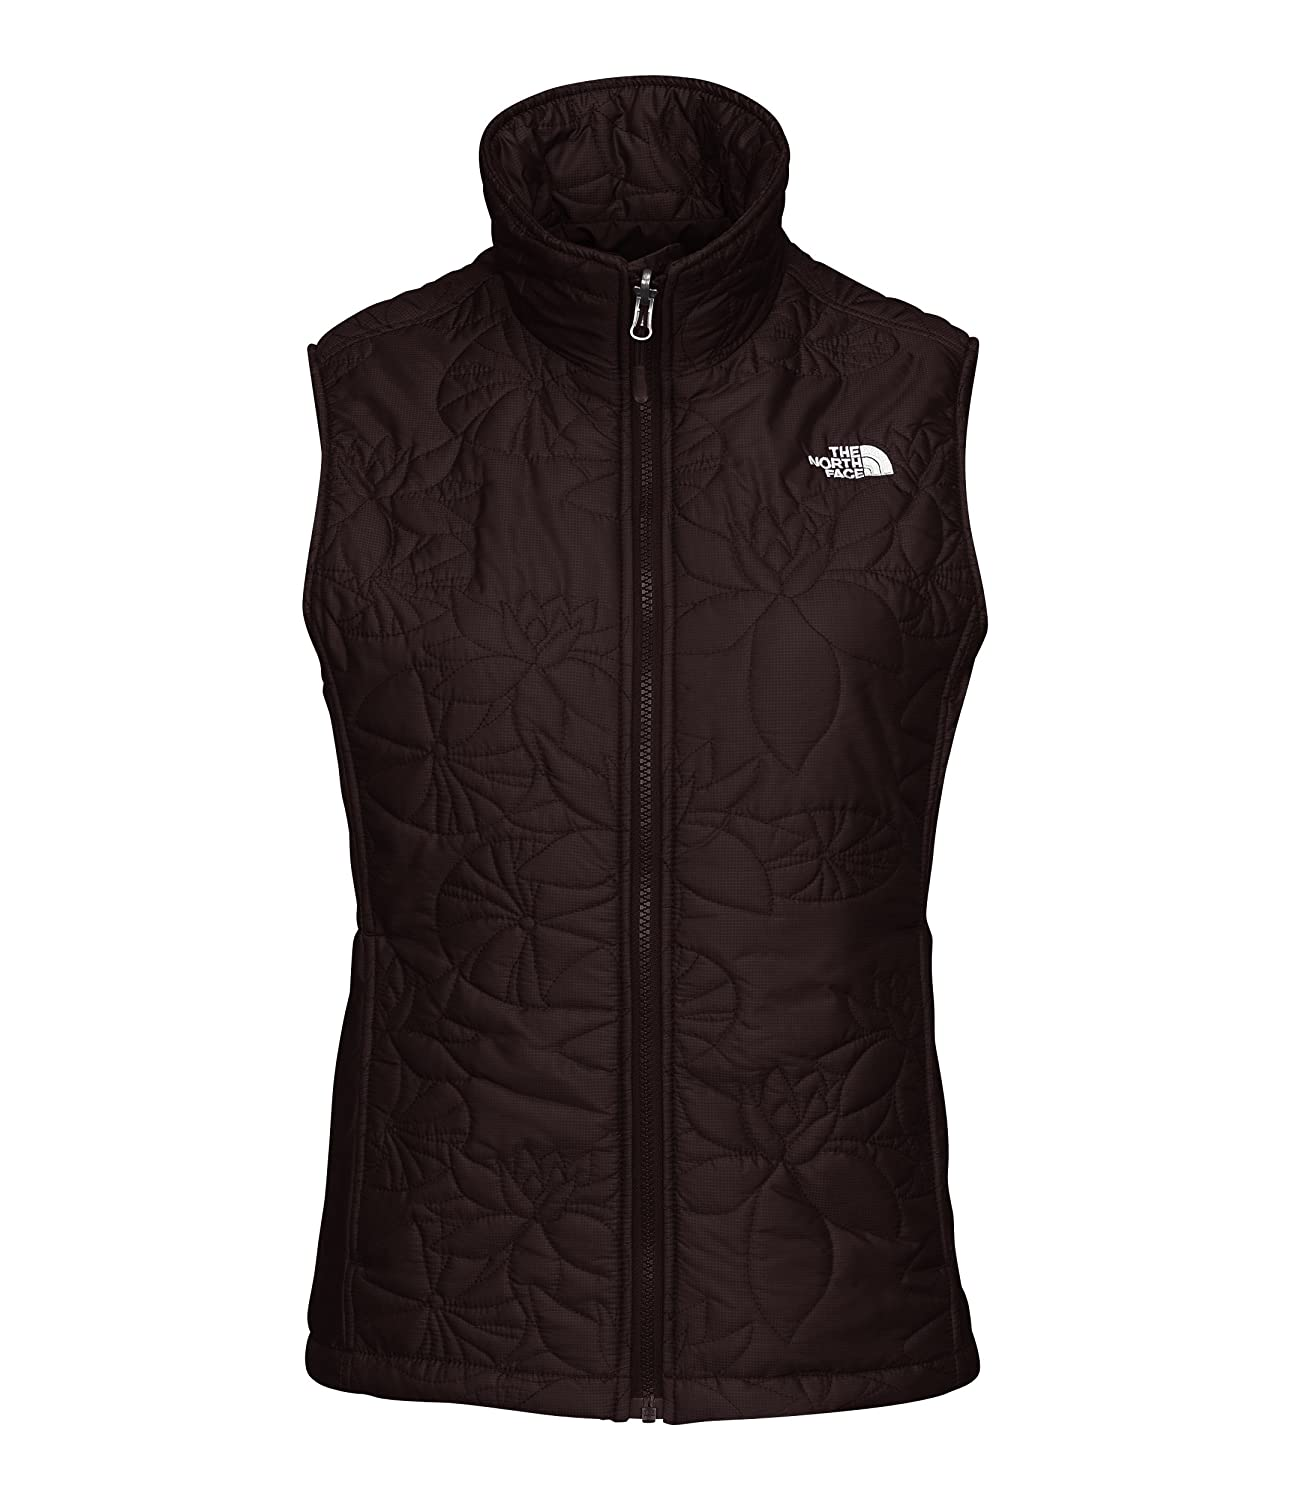 4d435396a The North Face Women's Lily Thermal Vest - Color: Brownie Brown ...